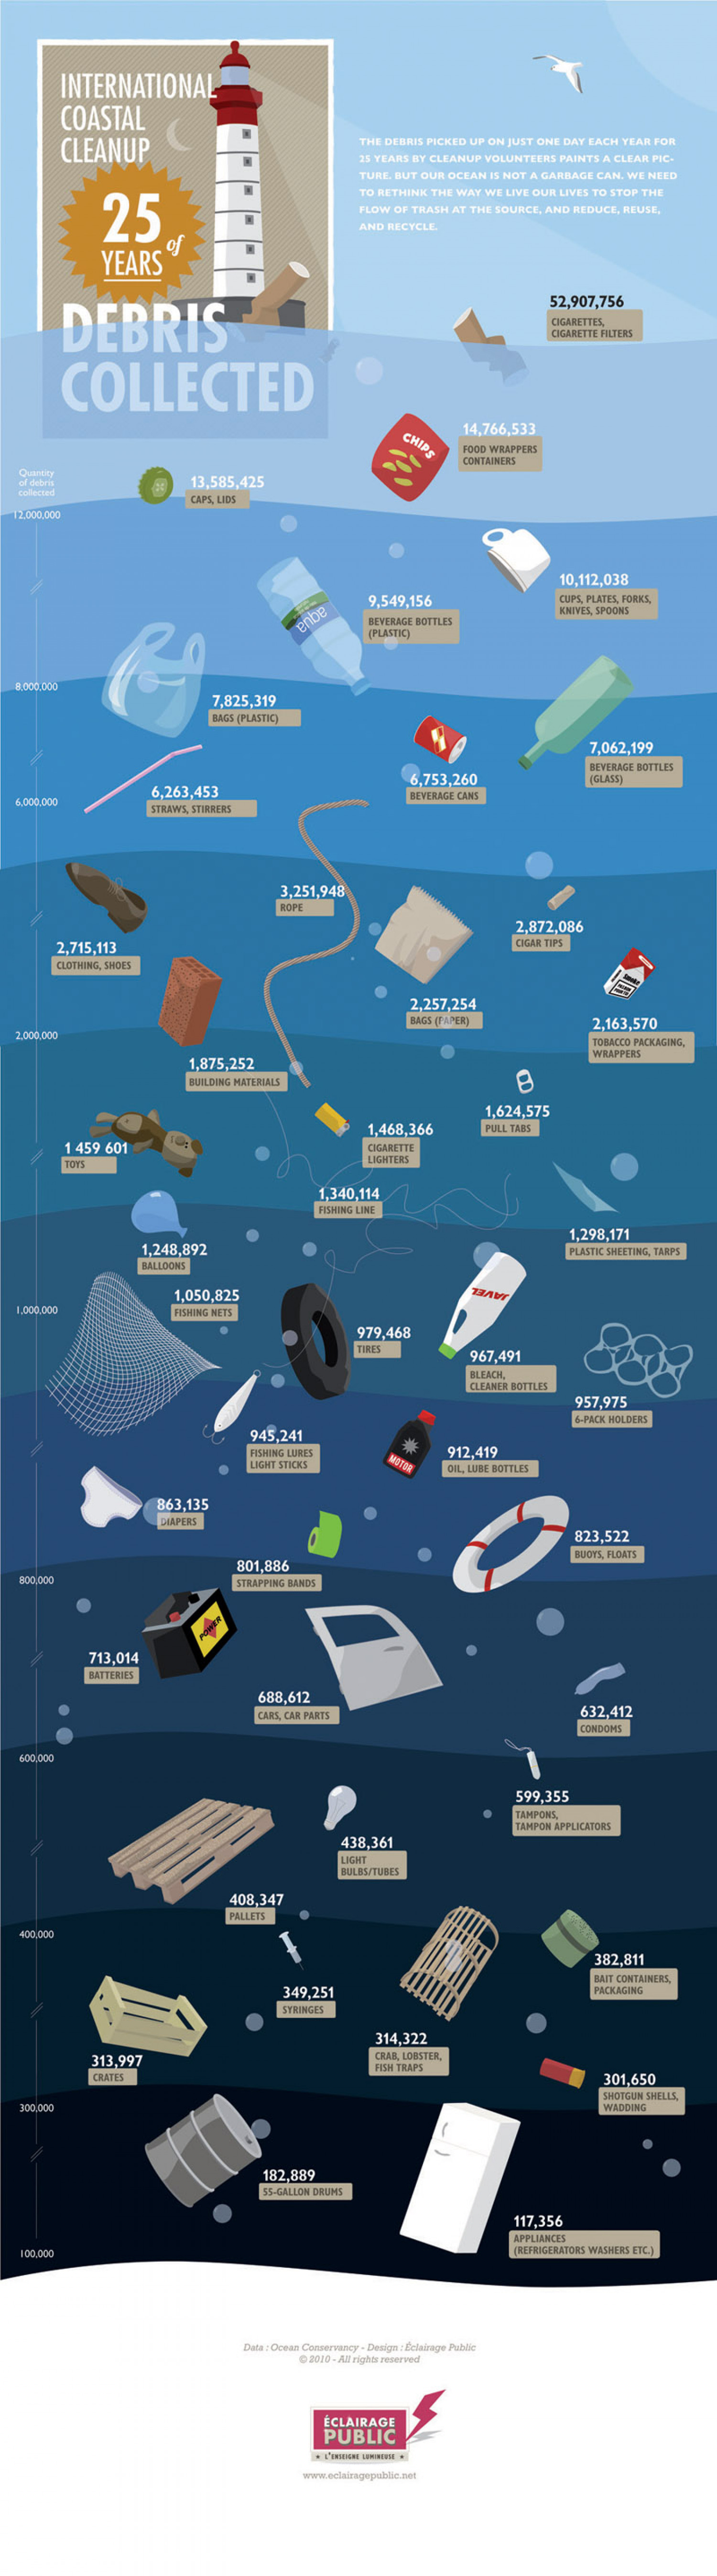 International Coastal Cleanup  Infographic